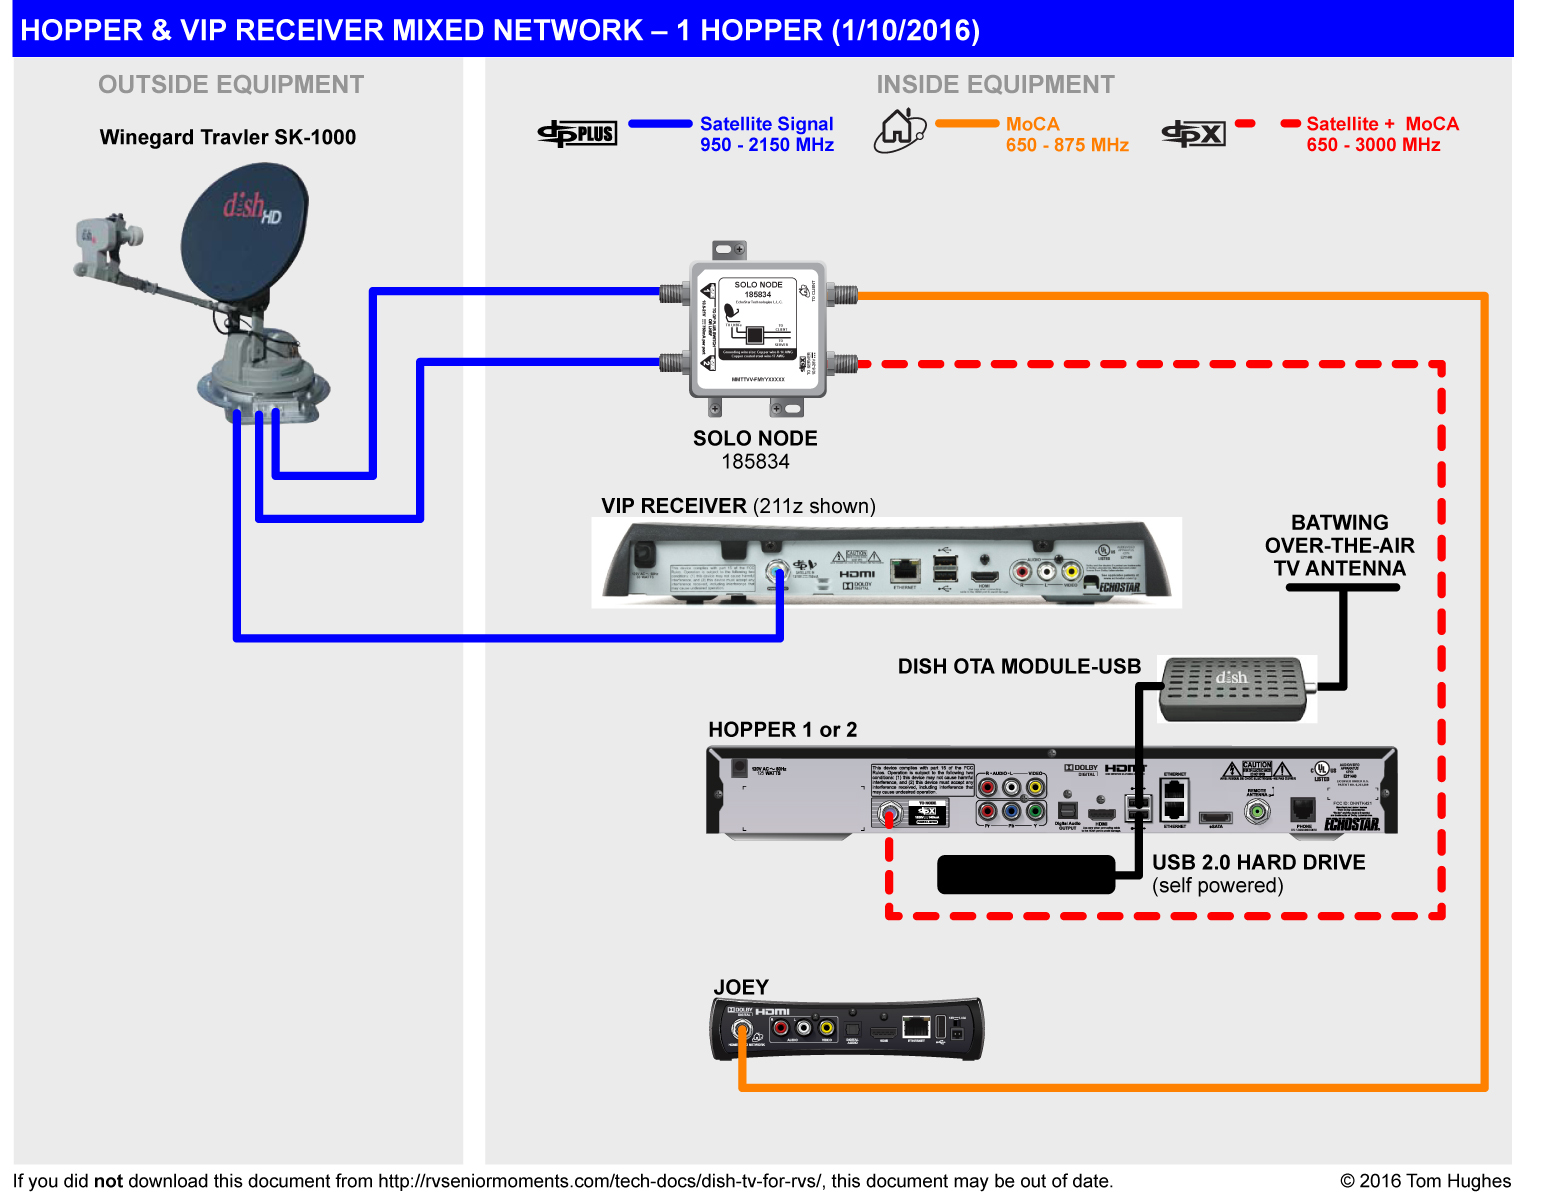 Dish tv rv network diagrams page 11 irv2 forums this image has been resized click this bar to view the full image the original image is sized 12 swarovskicordoba Gallery